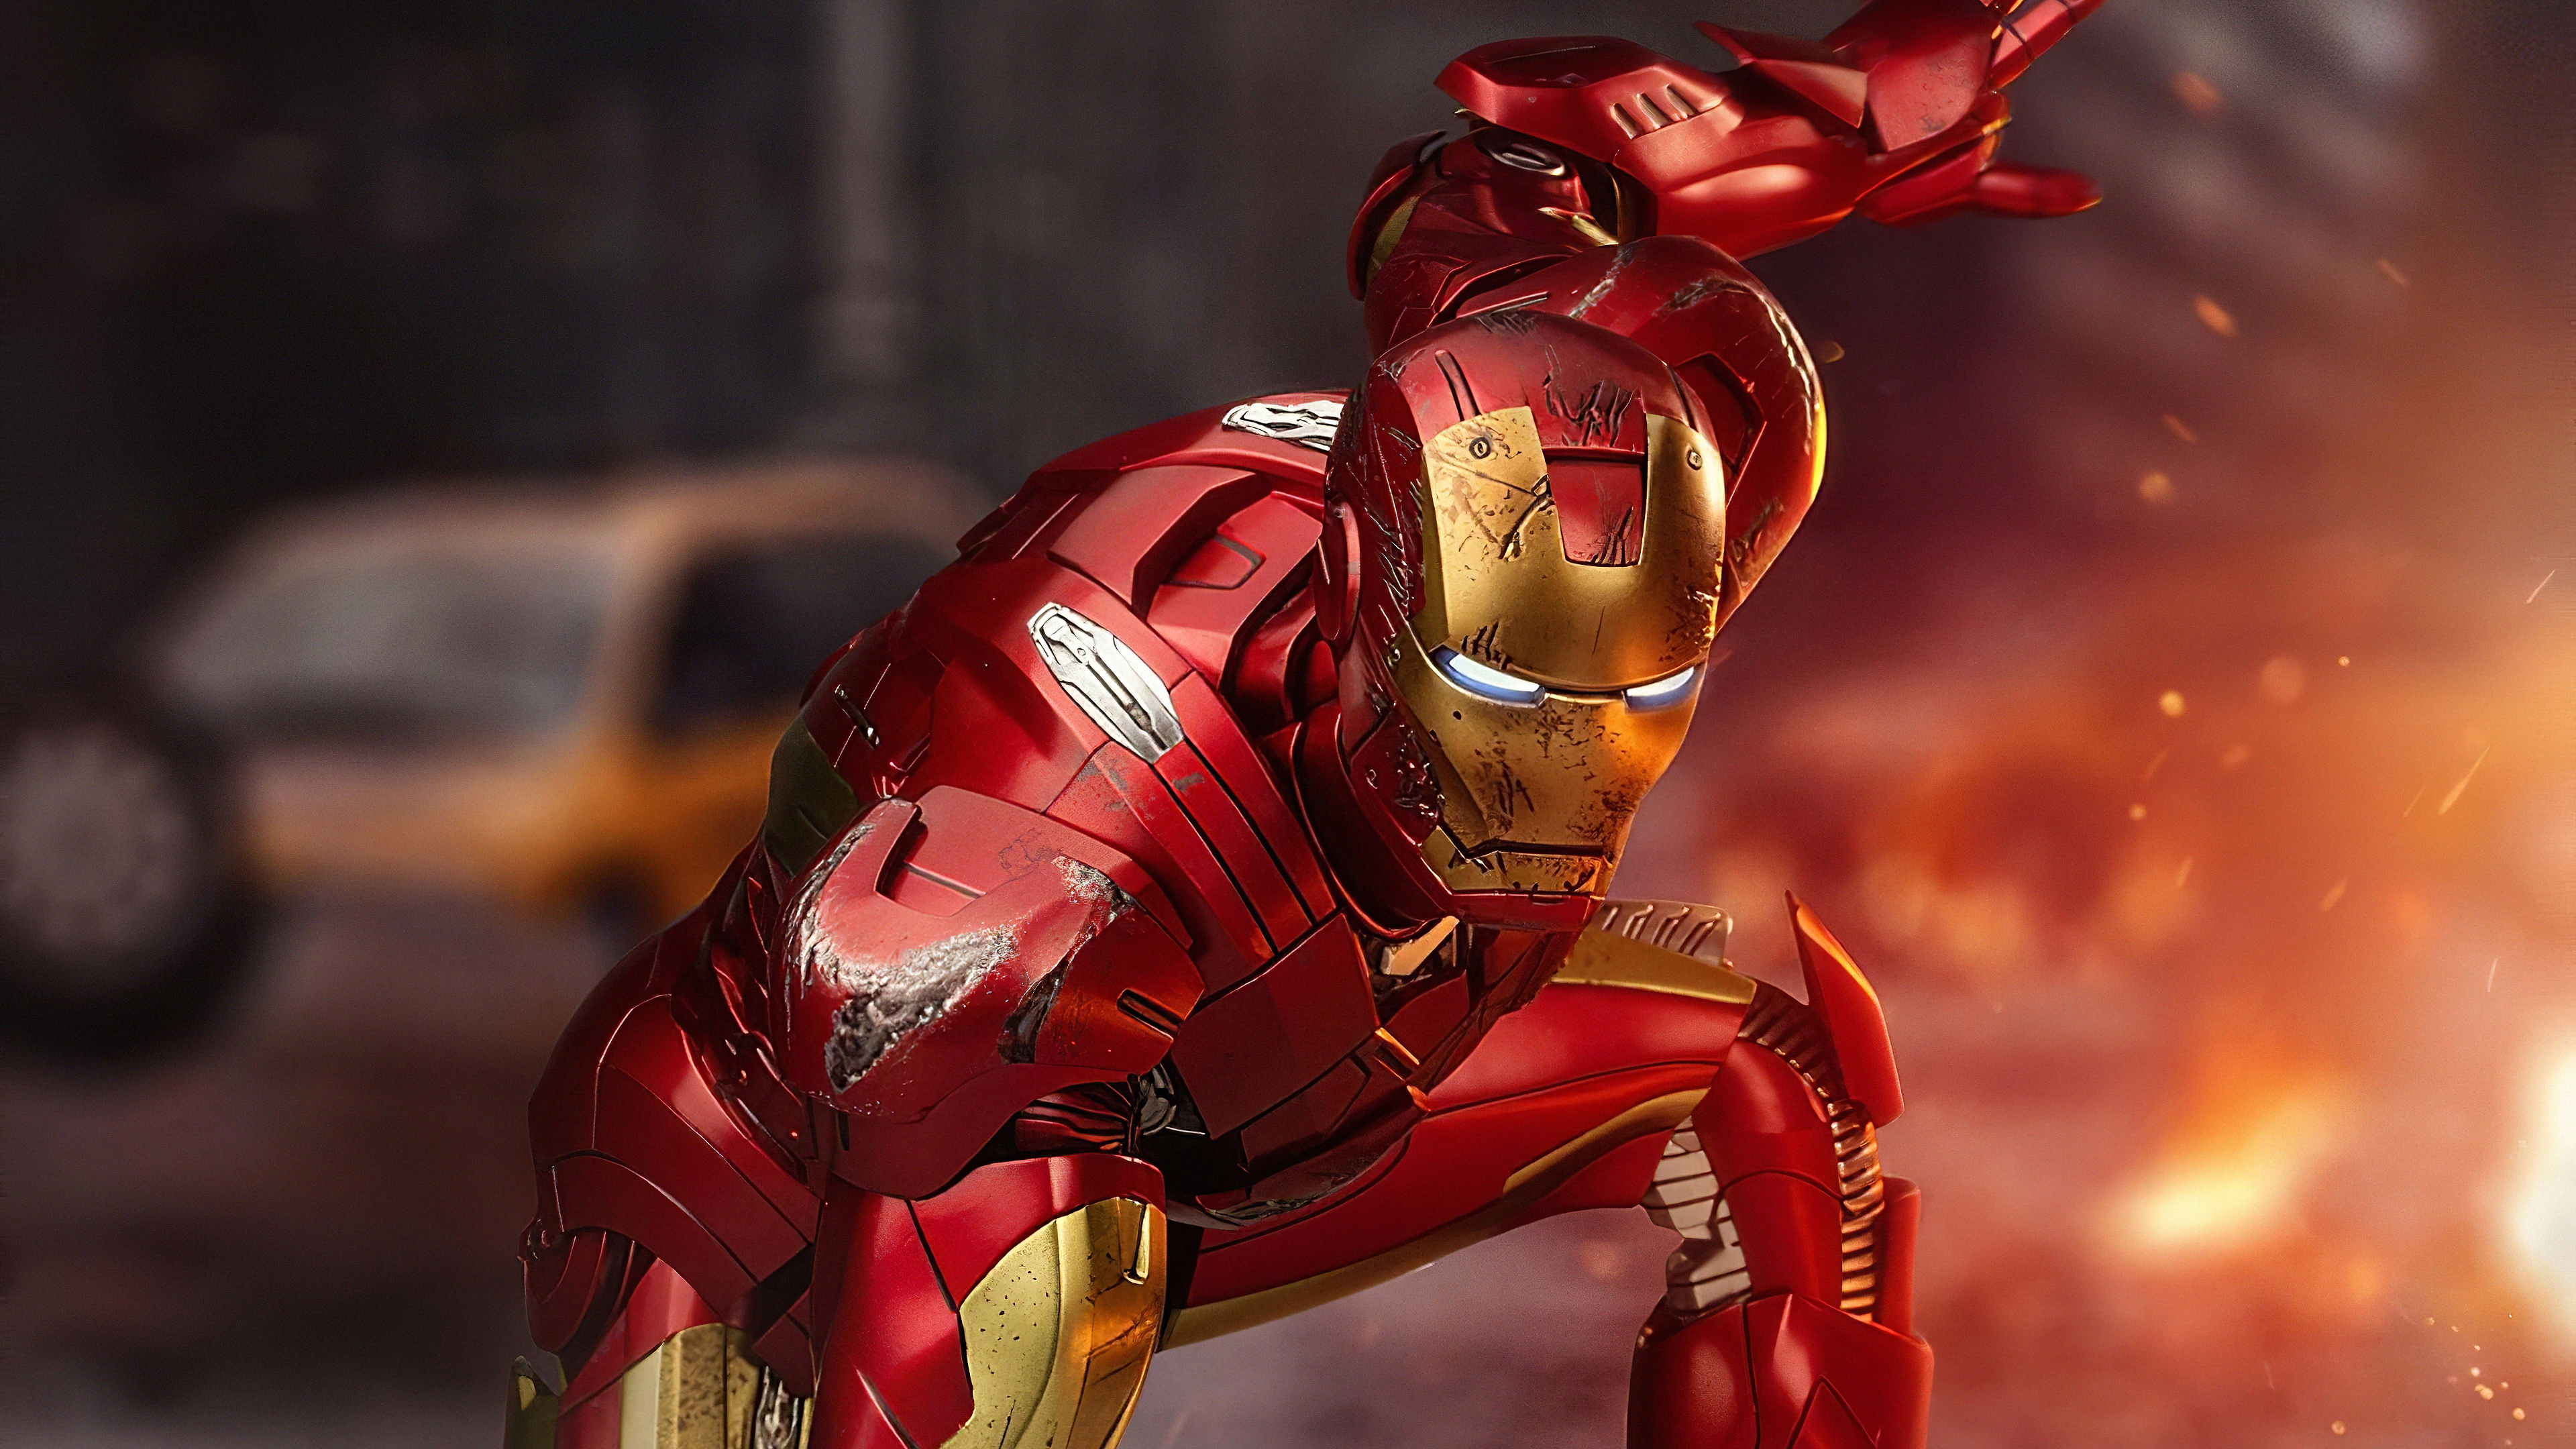 iron man artwork 1576090203 - Iron Man artwork - iron man hd wallpapers, iron man 4k wallpapers